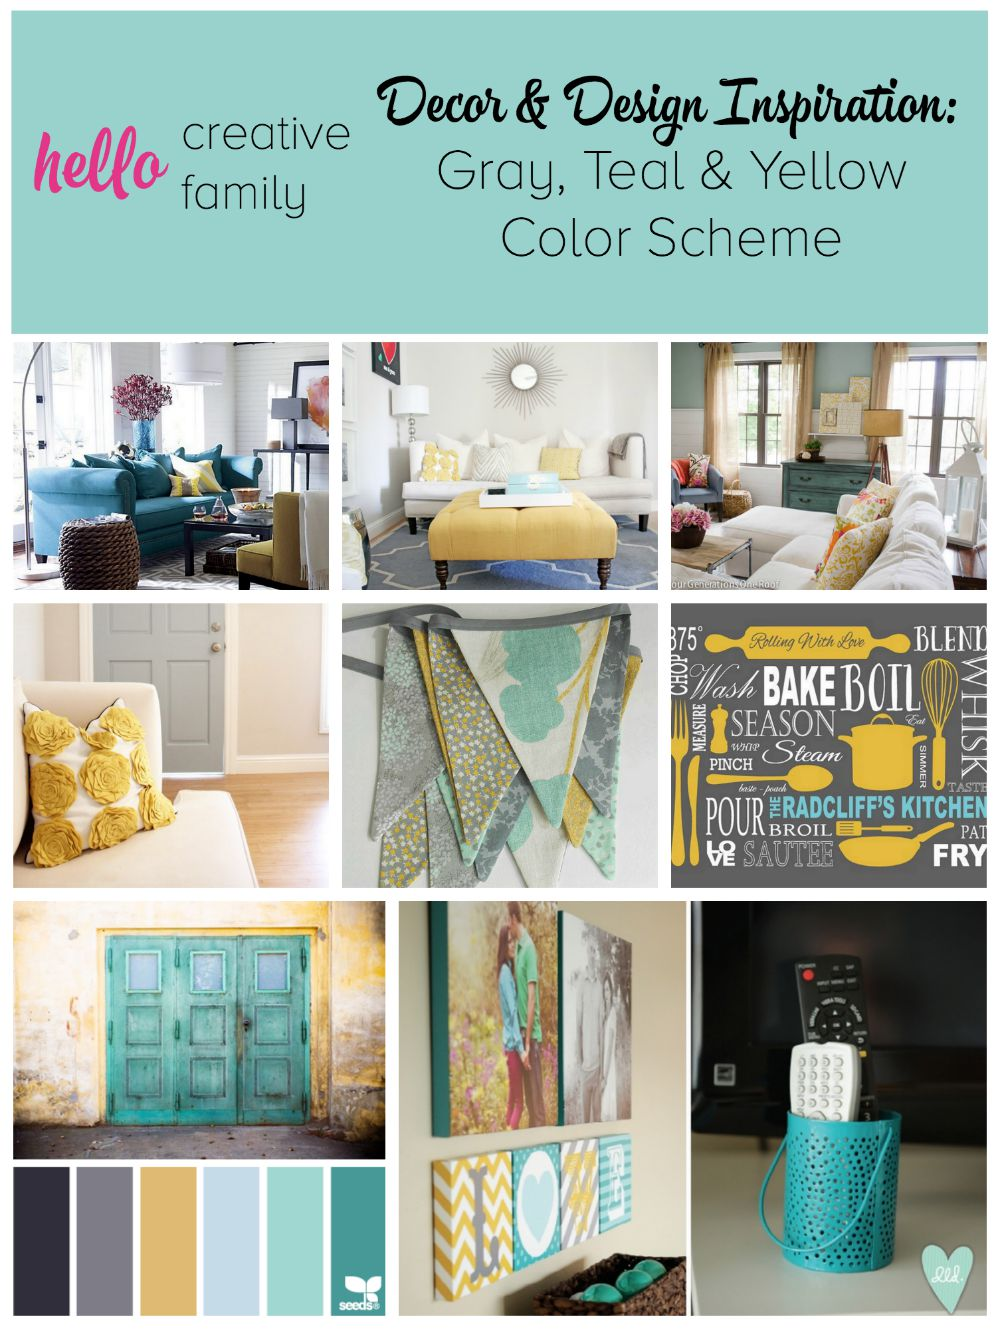 Mustard Color Paint For Kitchen Gray Teal And Yellow Color Scheme Decor Inspiration